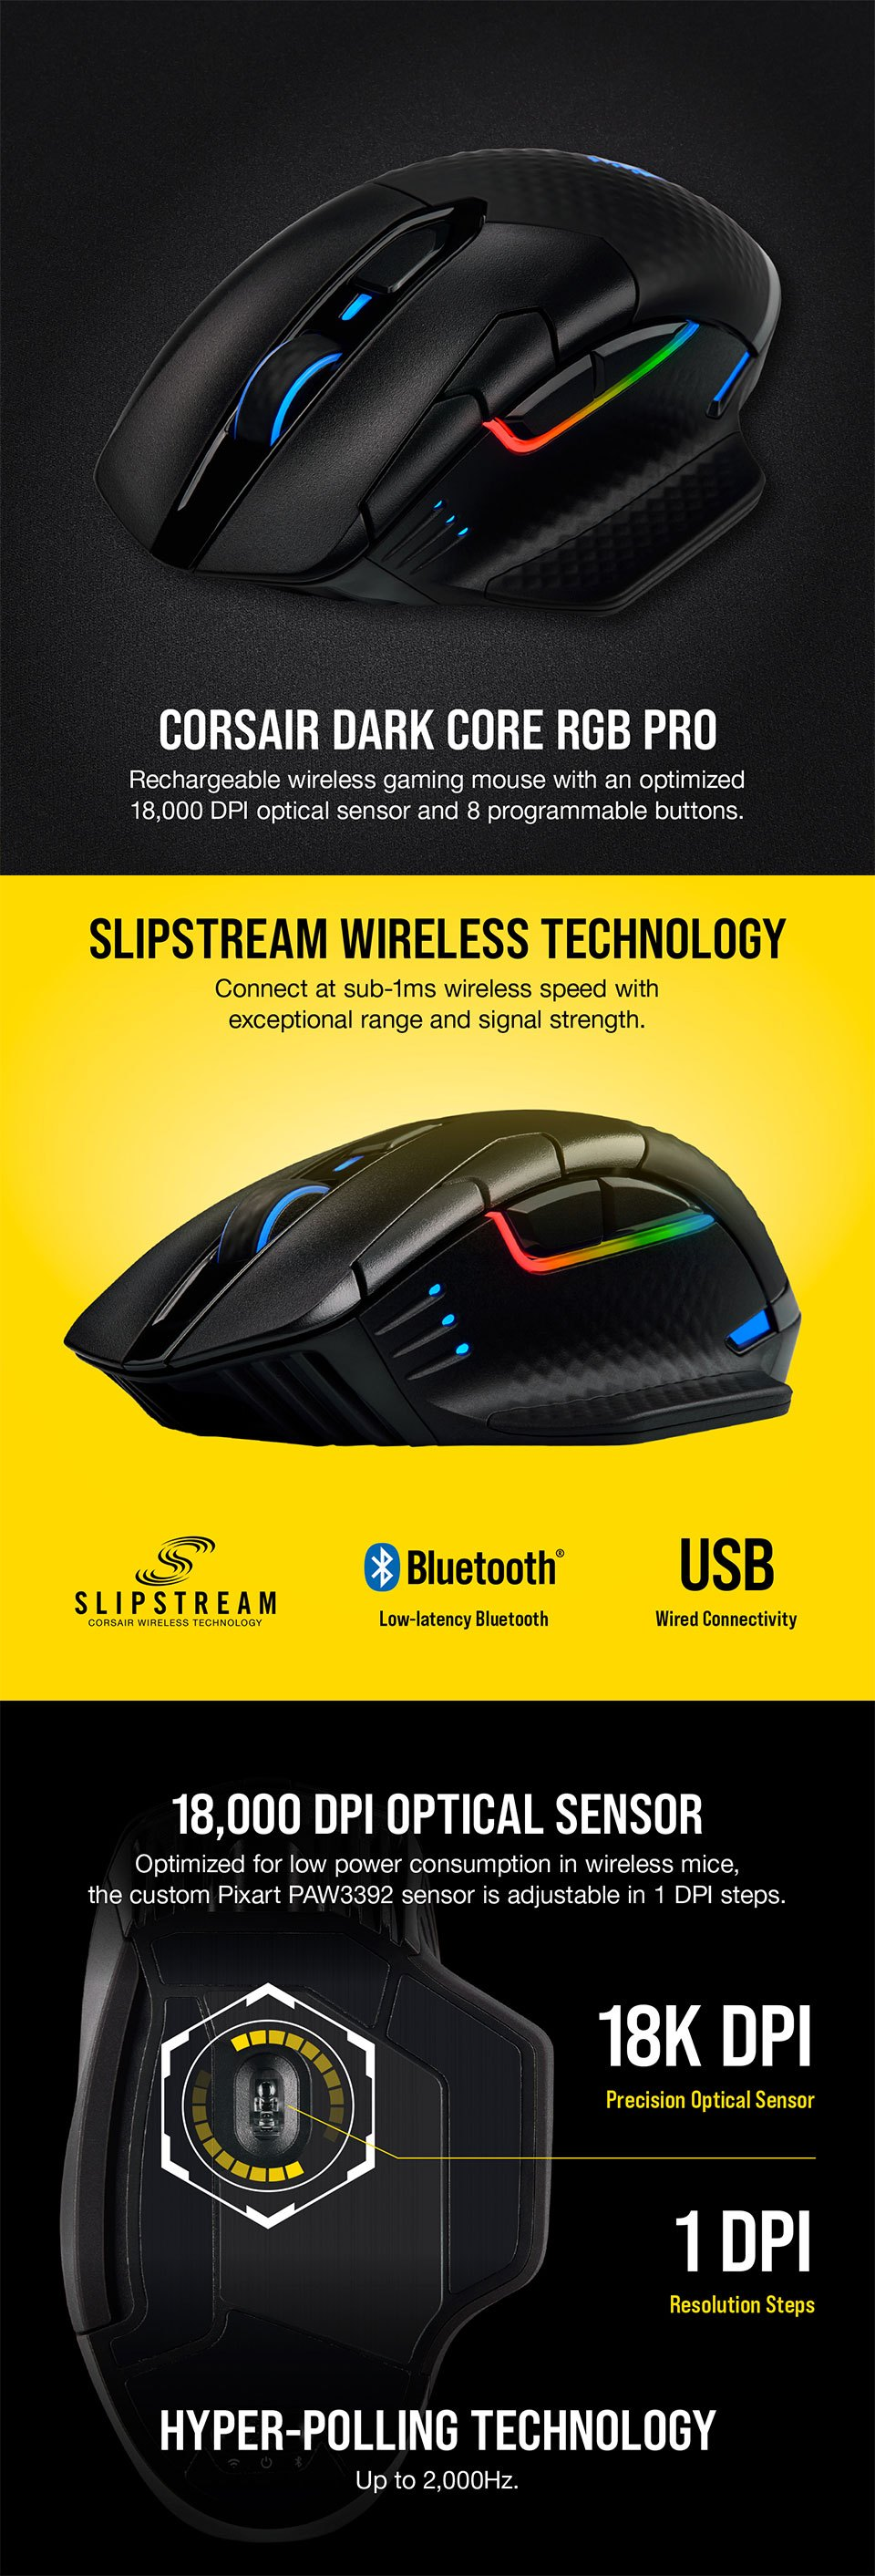 Corsair Dark Core Pro RGB Wireless Gaming Mouse features